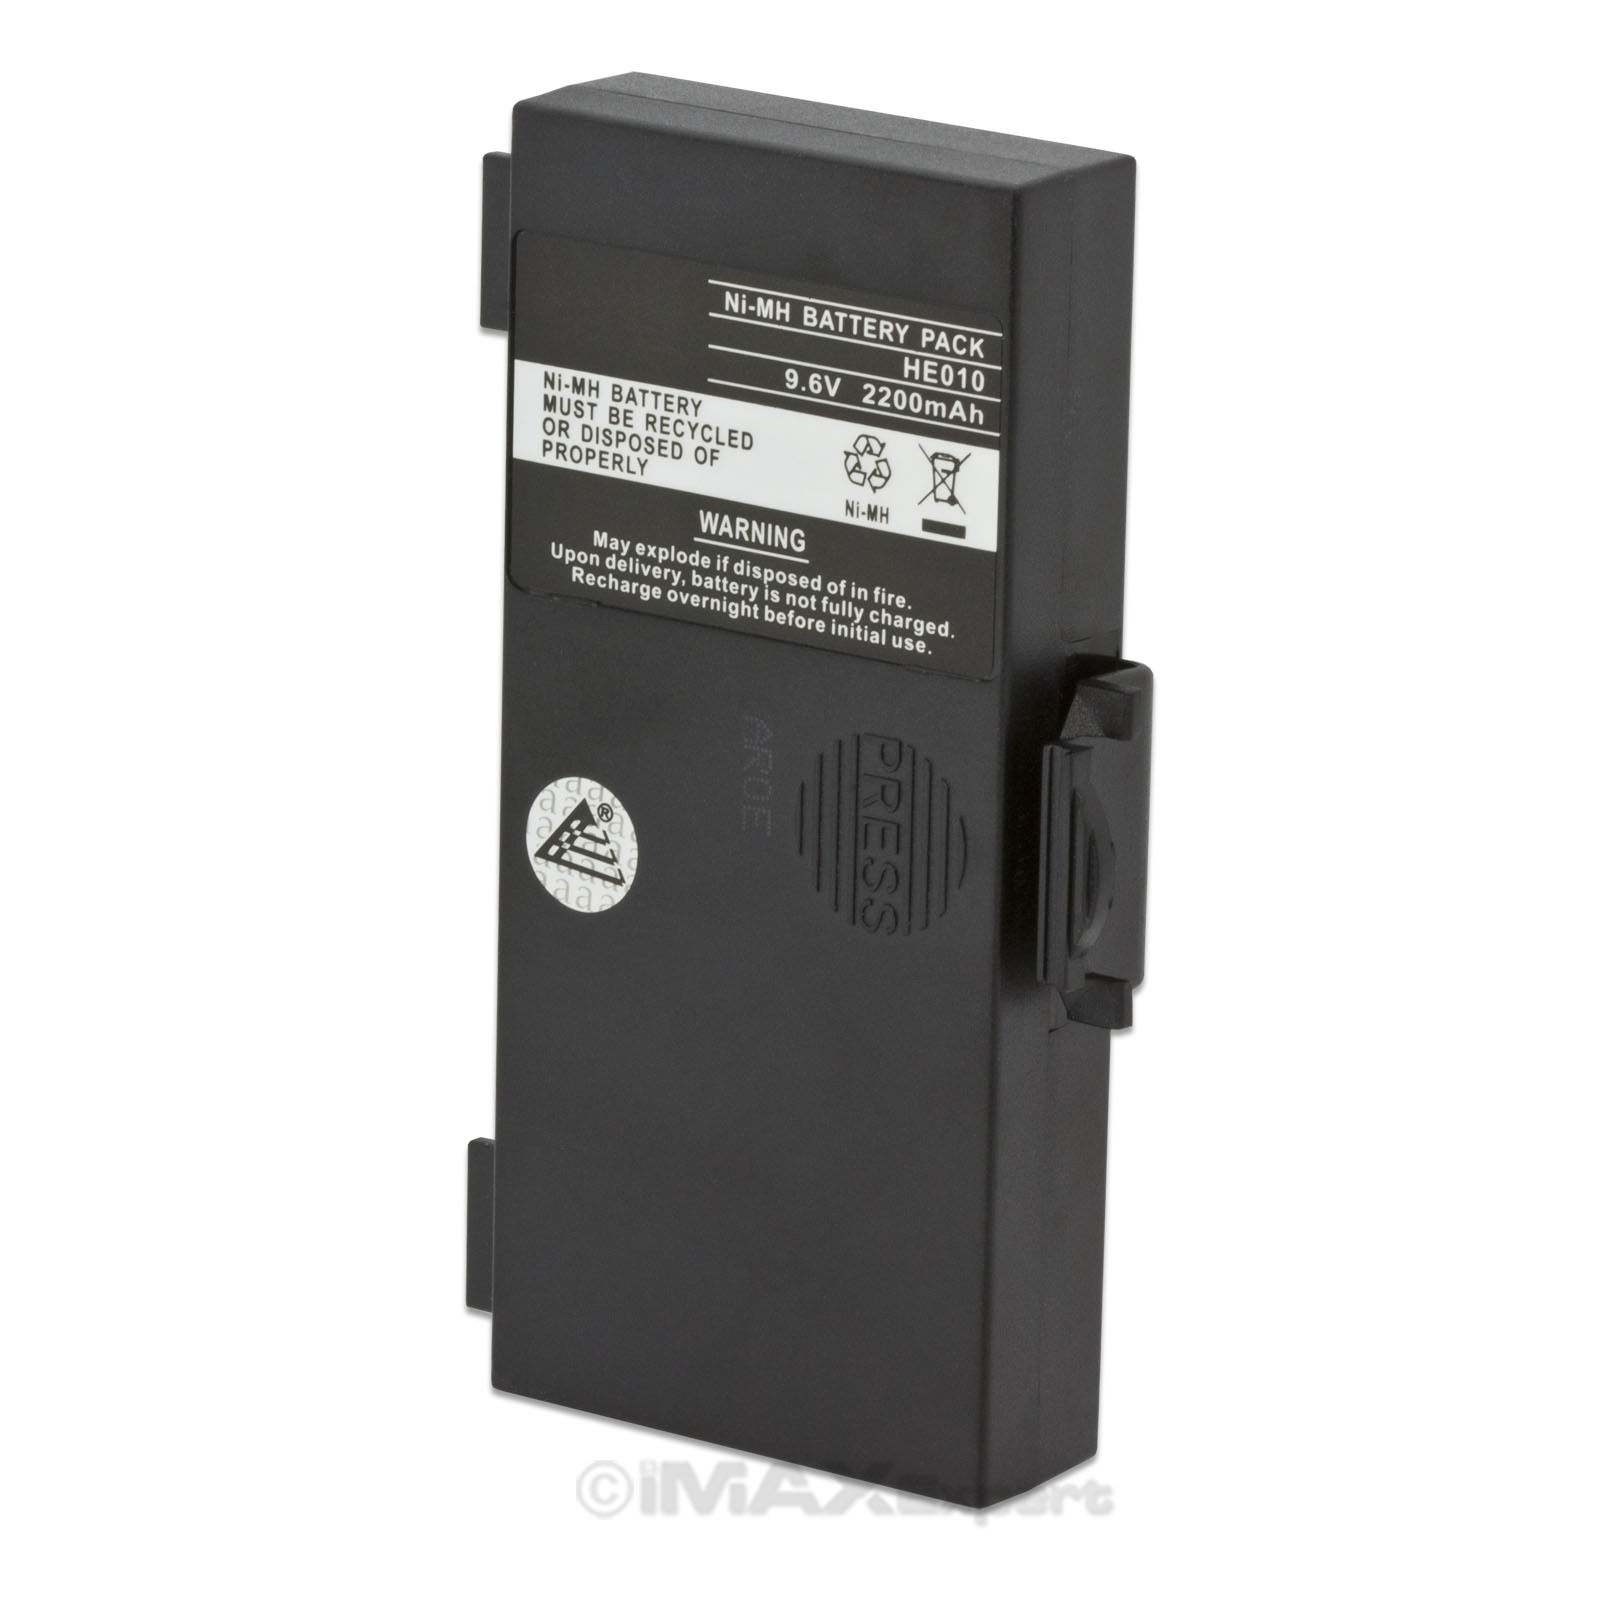 9 6v 2200mah ni mh crane battery for hetronic typ 68303010 70745 ebay. Black Bedroom Furniture Sets. Home Design Ideas